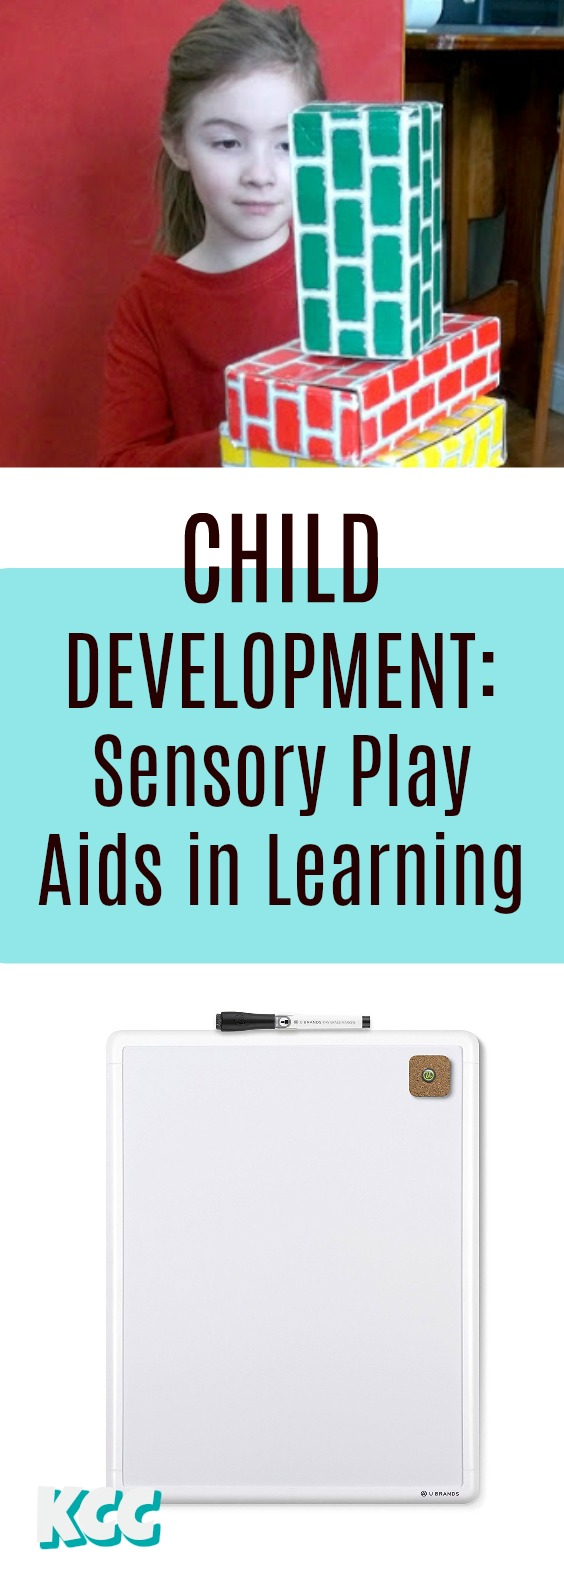 Child Development Psychology: Sensory Play Aids in the Learning Process